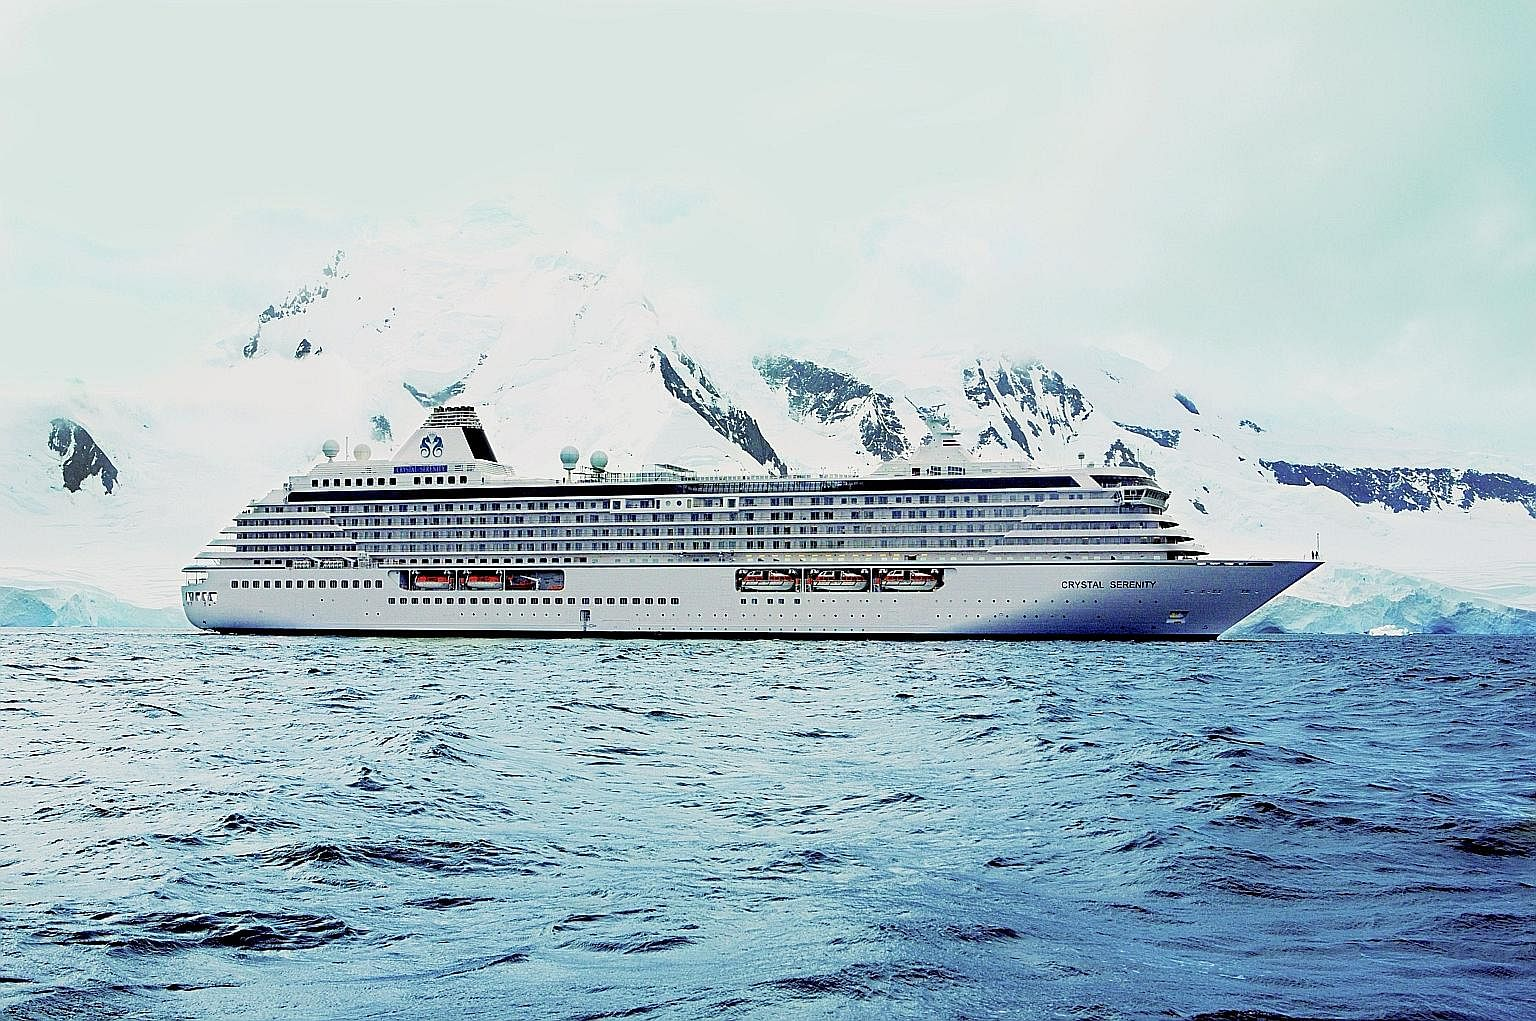 The Crystal Serenity was the first passenger ship of its size to sail the Northwest Passage.